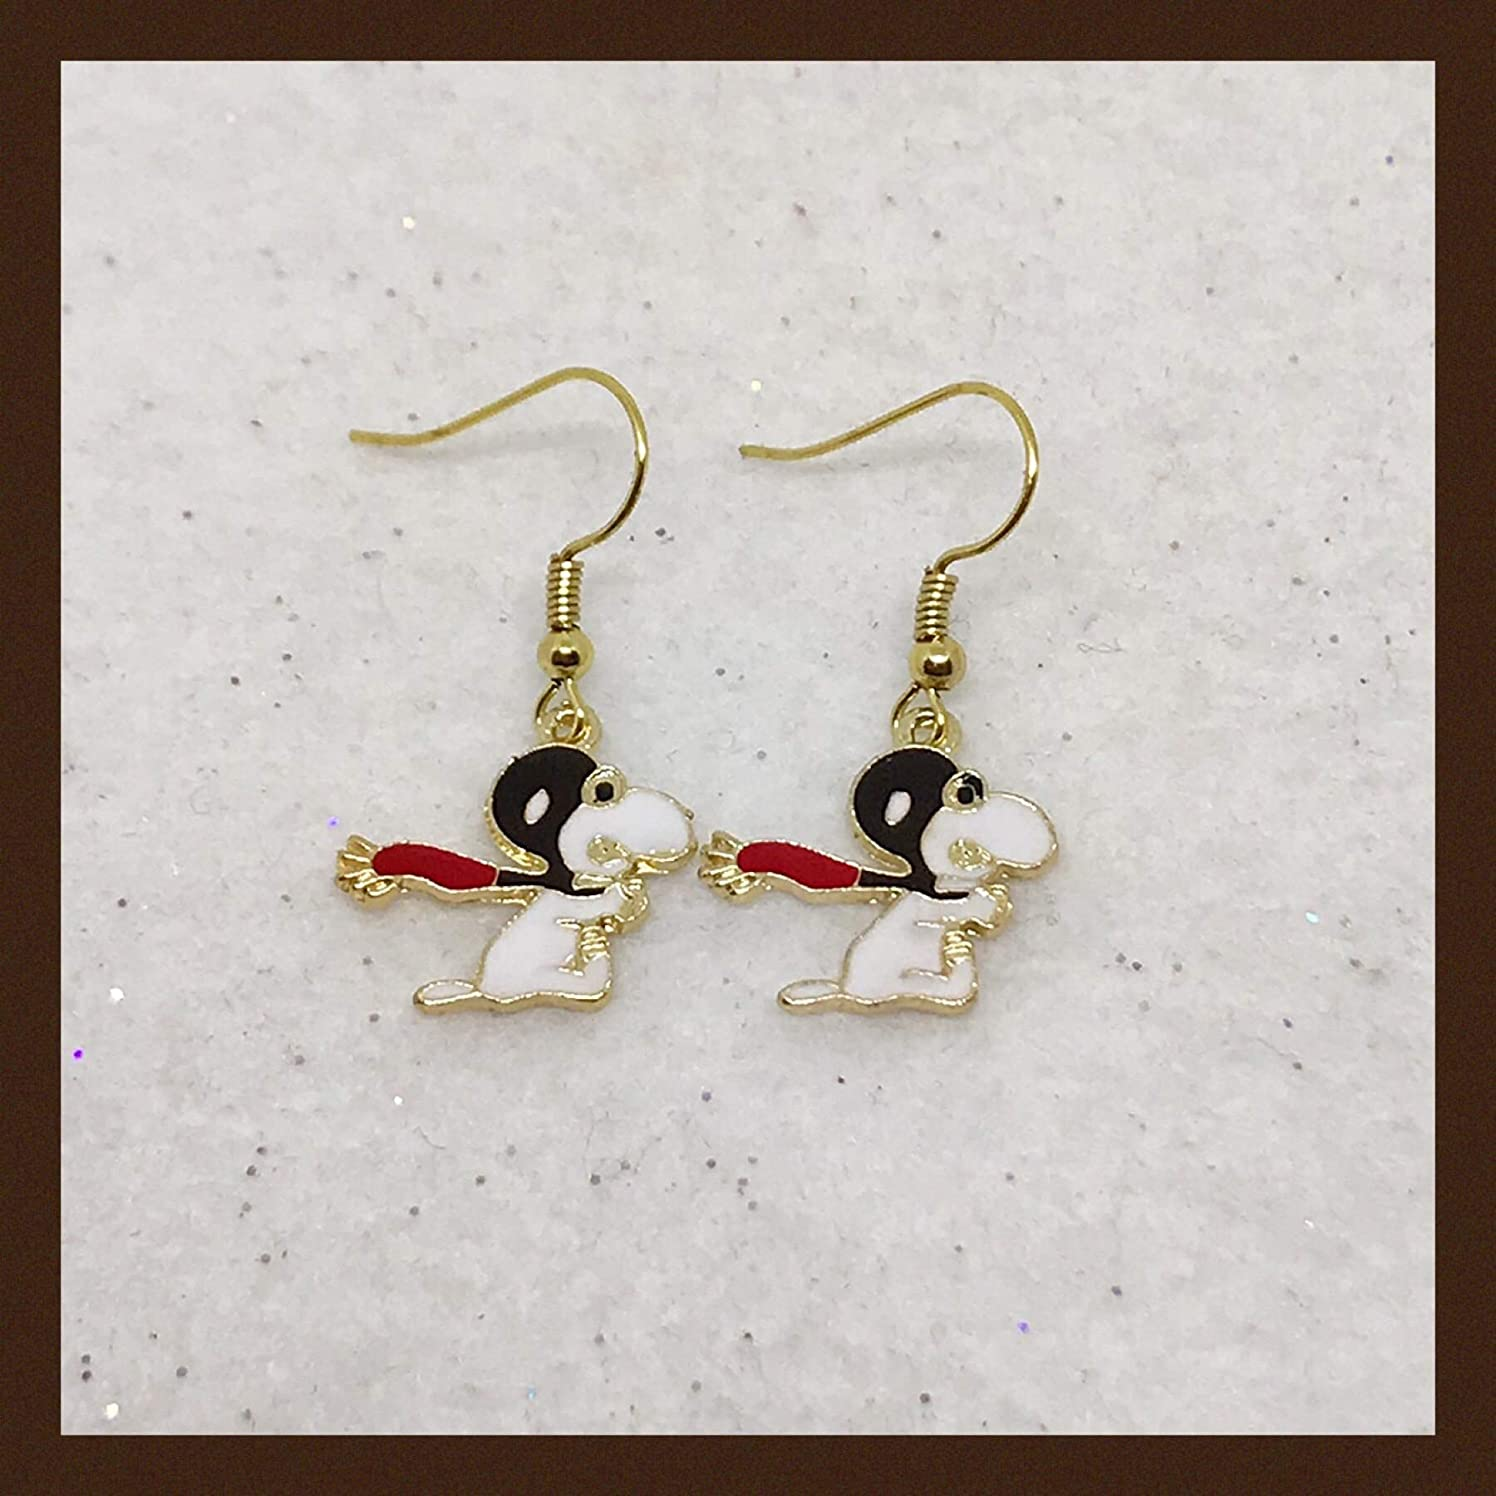 Peanuts Inspired Snoopy VS The Red Baron Earrings